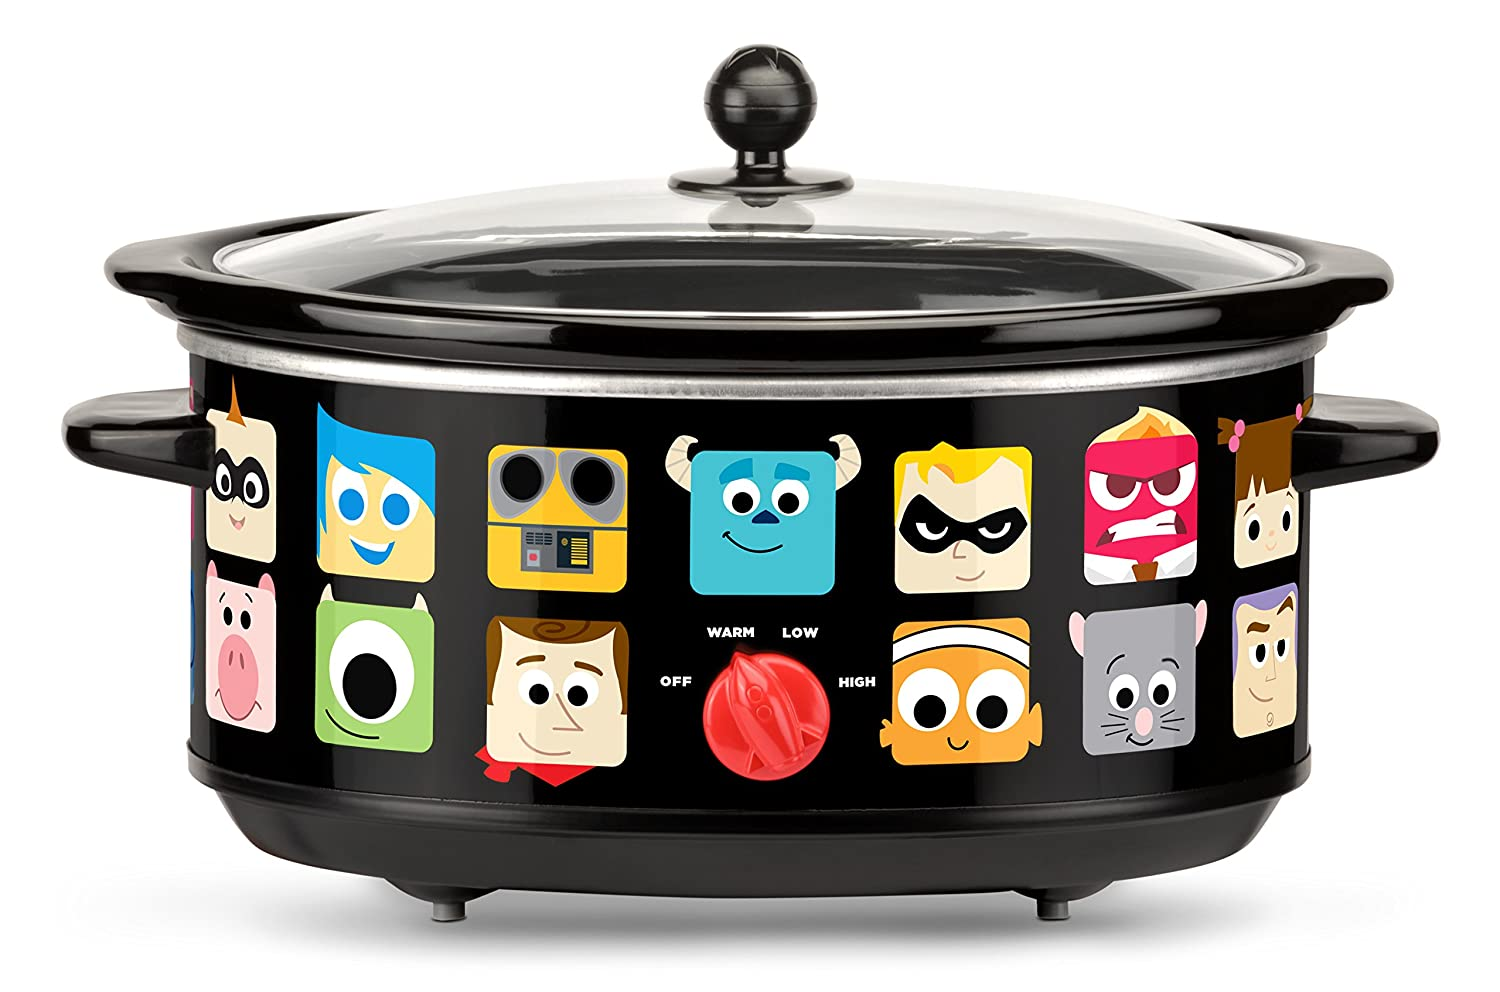 Disney DPX-7 Pixar Slow Cooker 7 quart Black